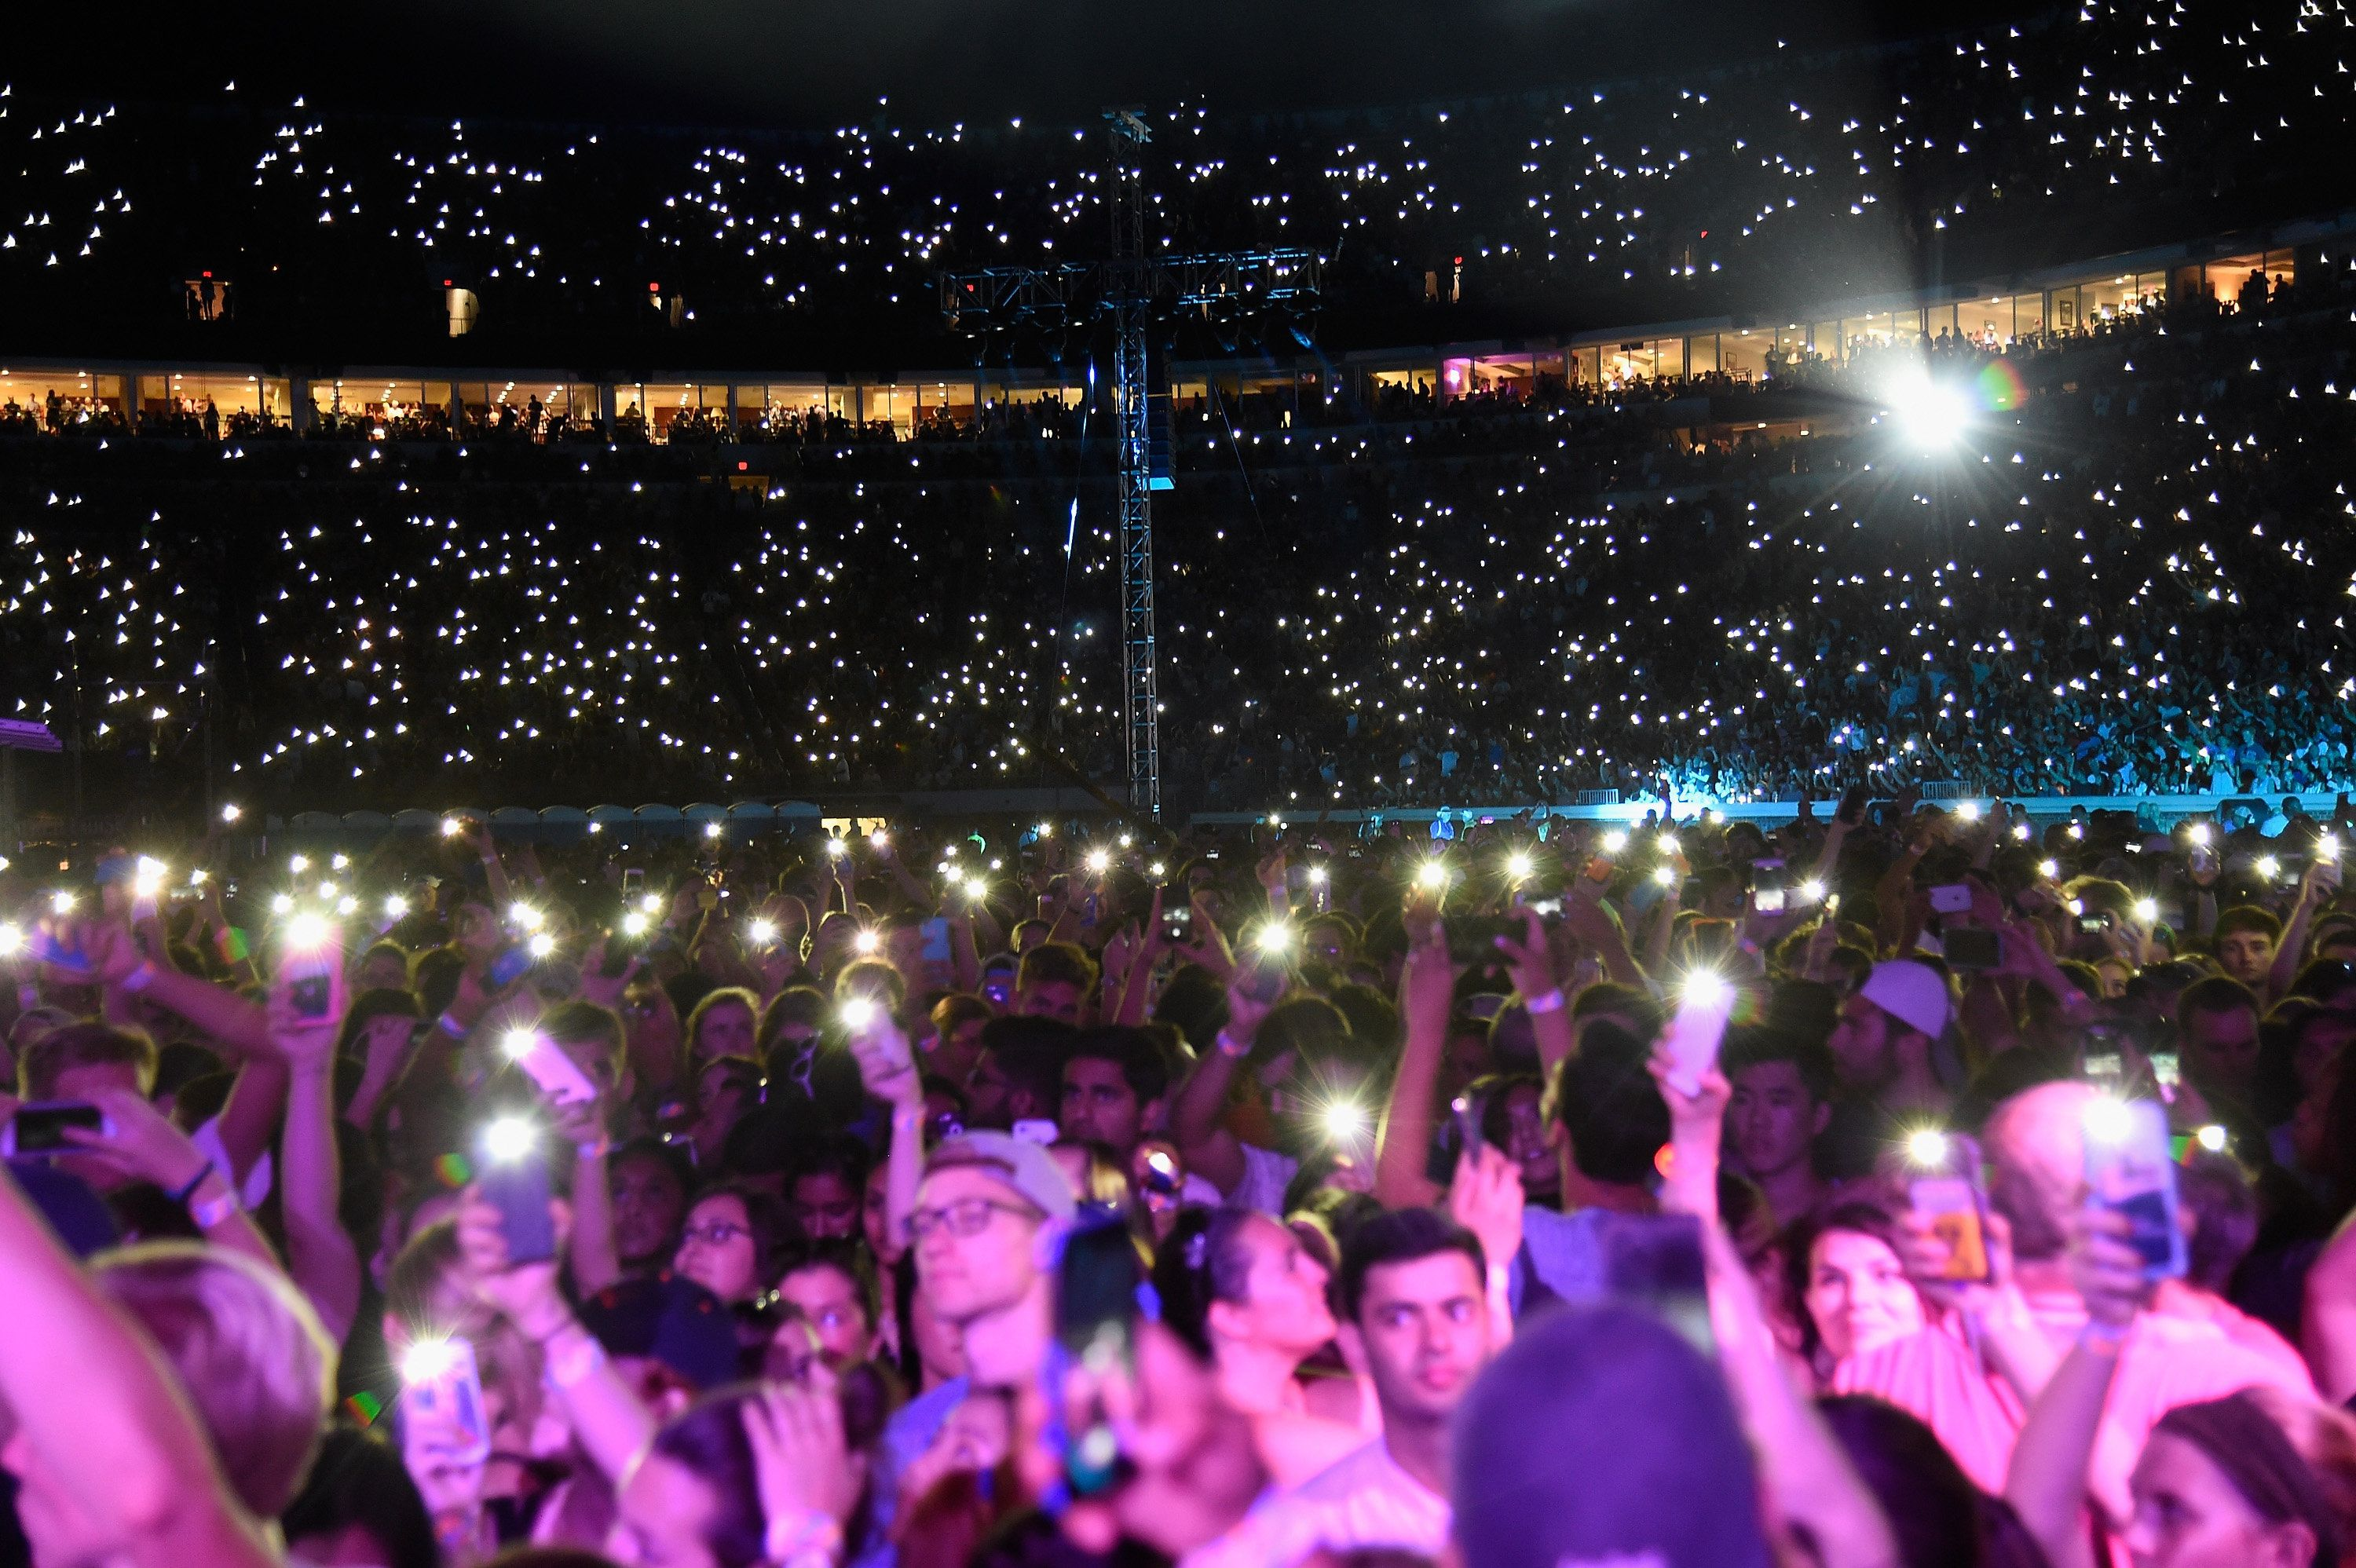 CHARLOTTESVILLE, VA - SEPTEMBER 24:  Fans hold up their cell phones with the lights on at 'A Concert for Charlottesville,'  at University of Virginia's Scott Stadium on September 24, 2017 in Charlottesville, Virginia. Concert live-stream presented in partnership with Oath.  (Photo by Kevin Mazur/Getty Images)